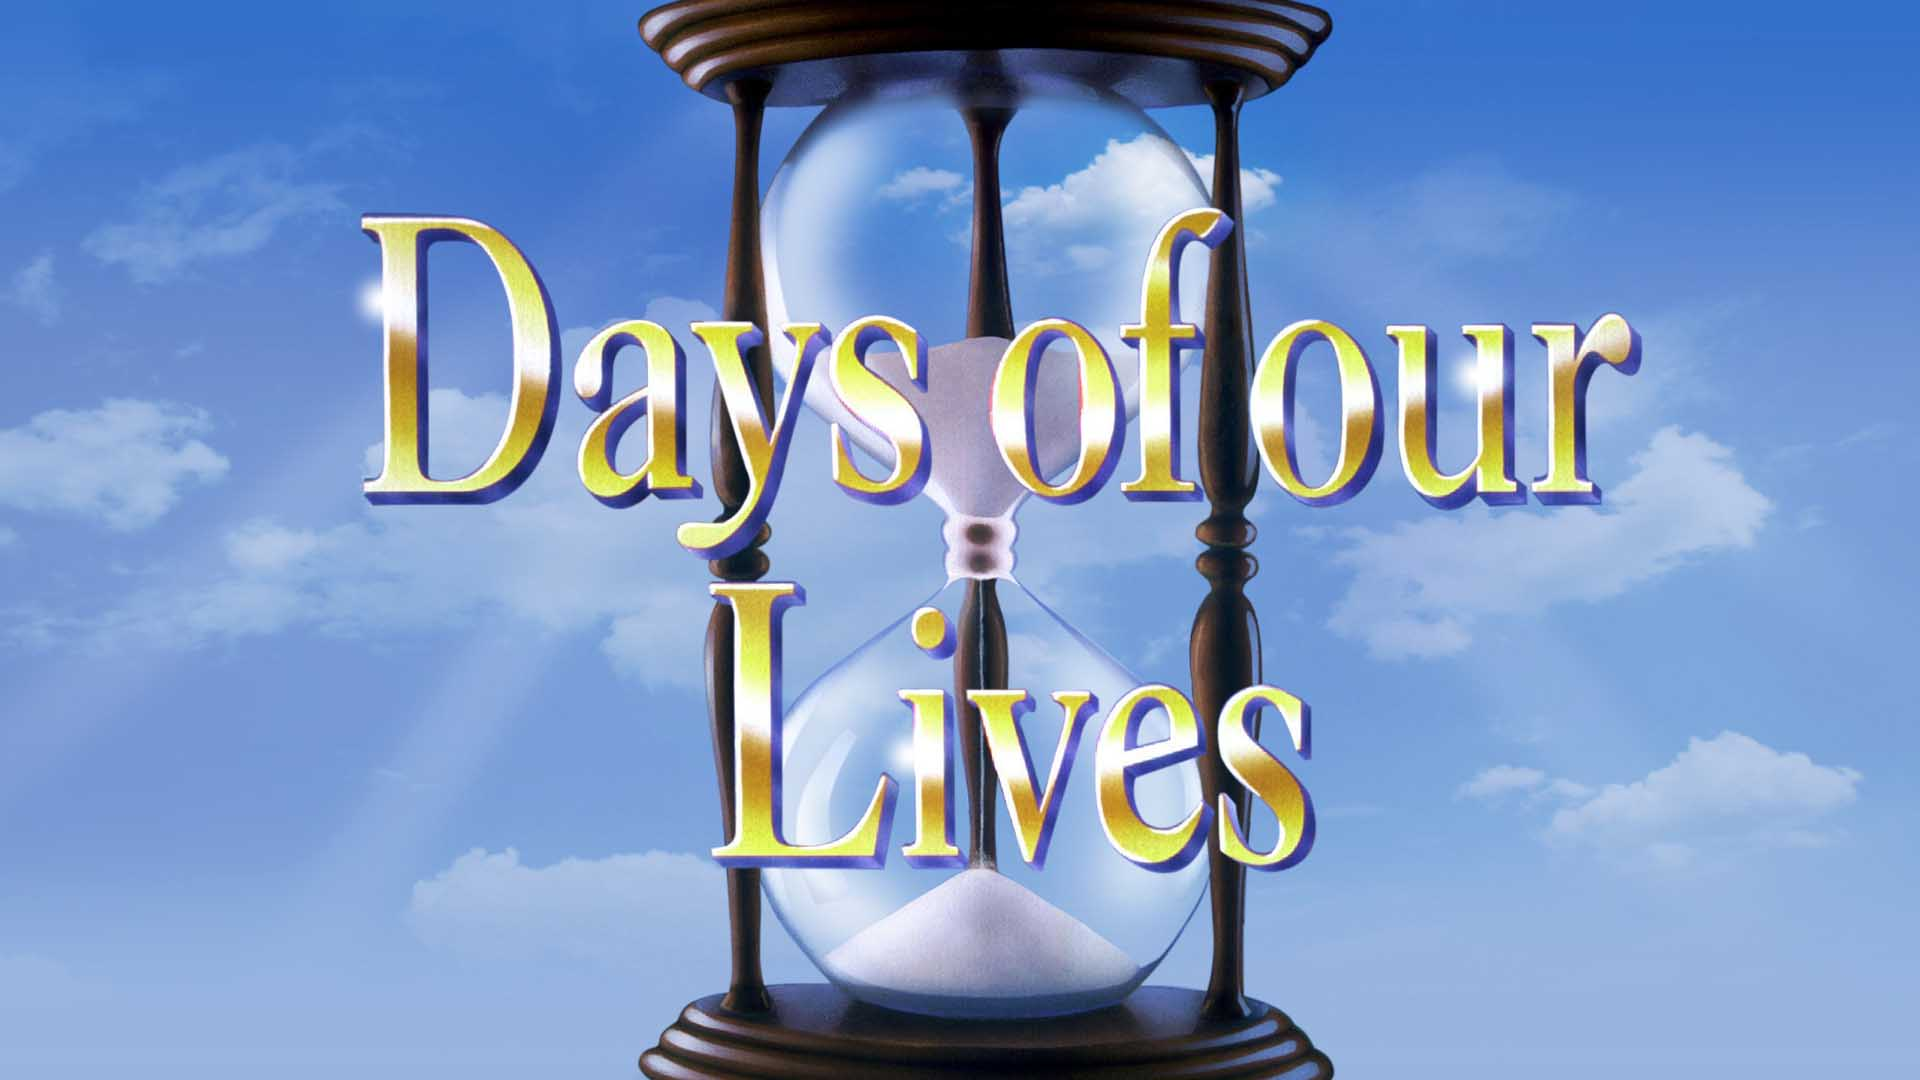 How to watch Days of Our Lives outside the US